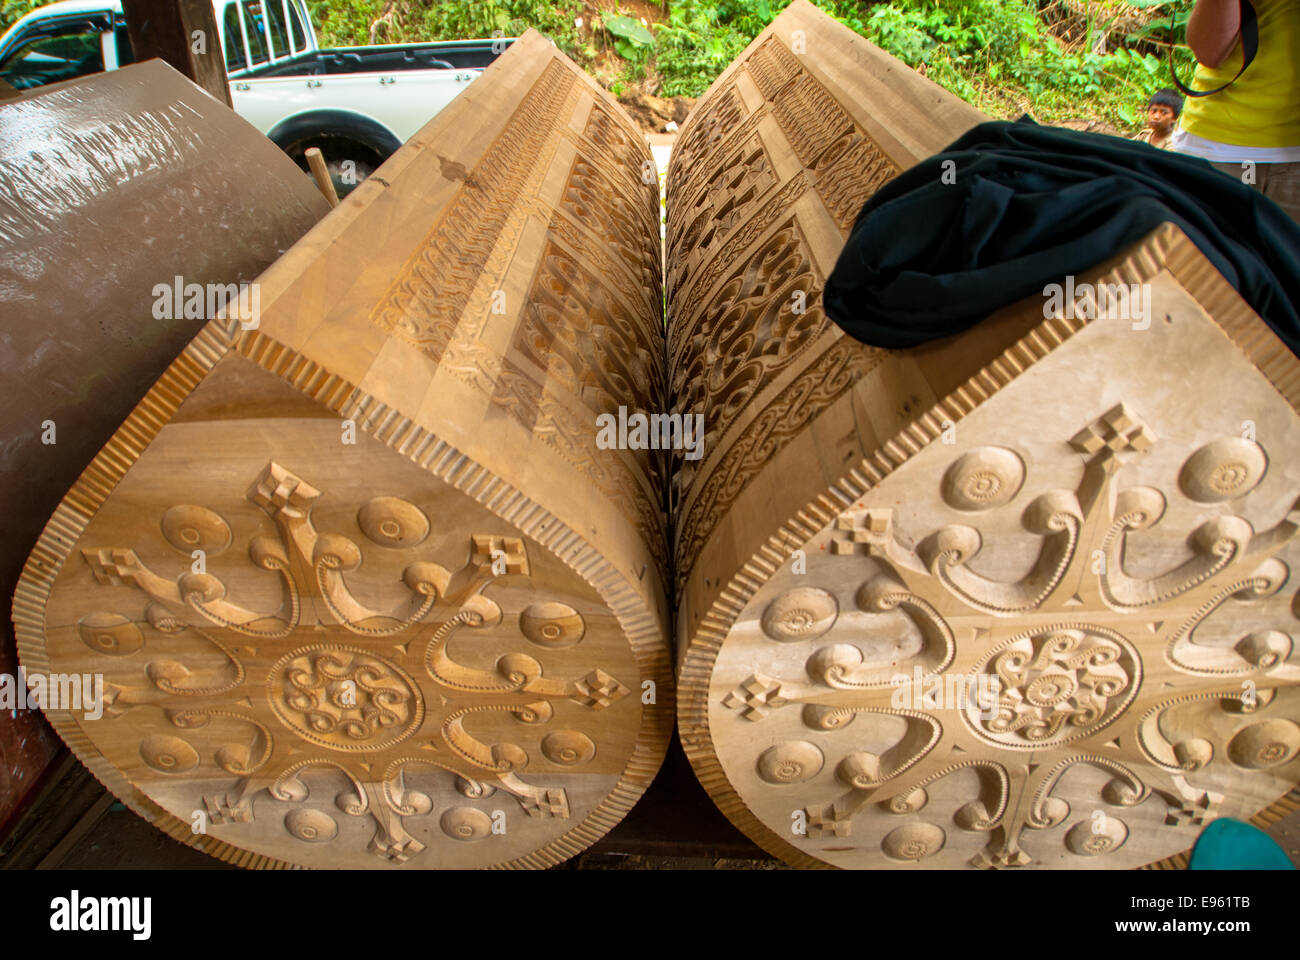 new coffins at kete kesu in sulawesi in indonesia - Stock Image